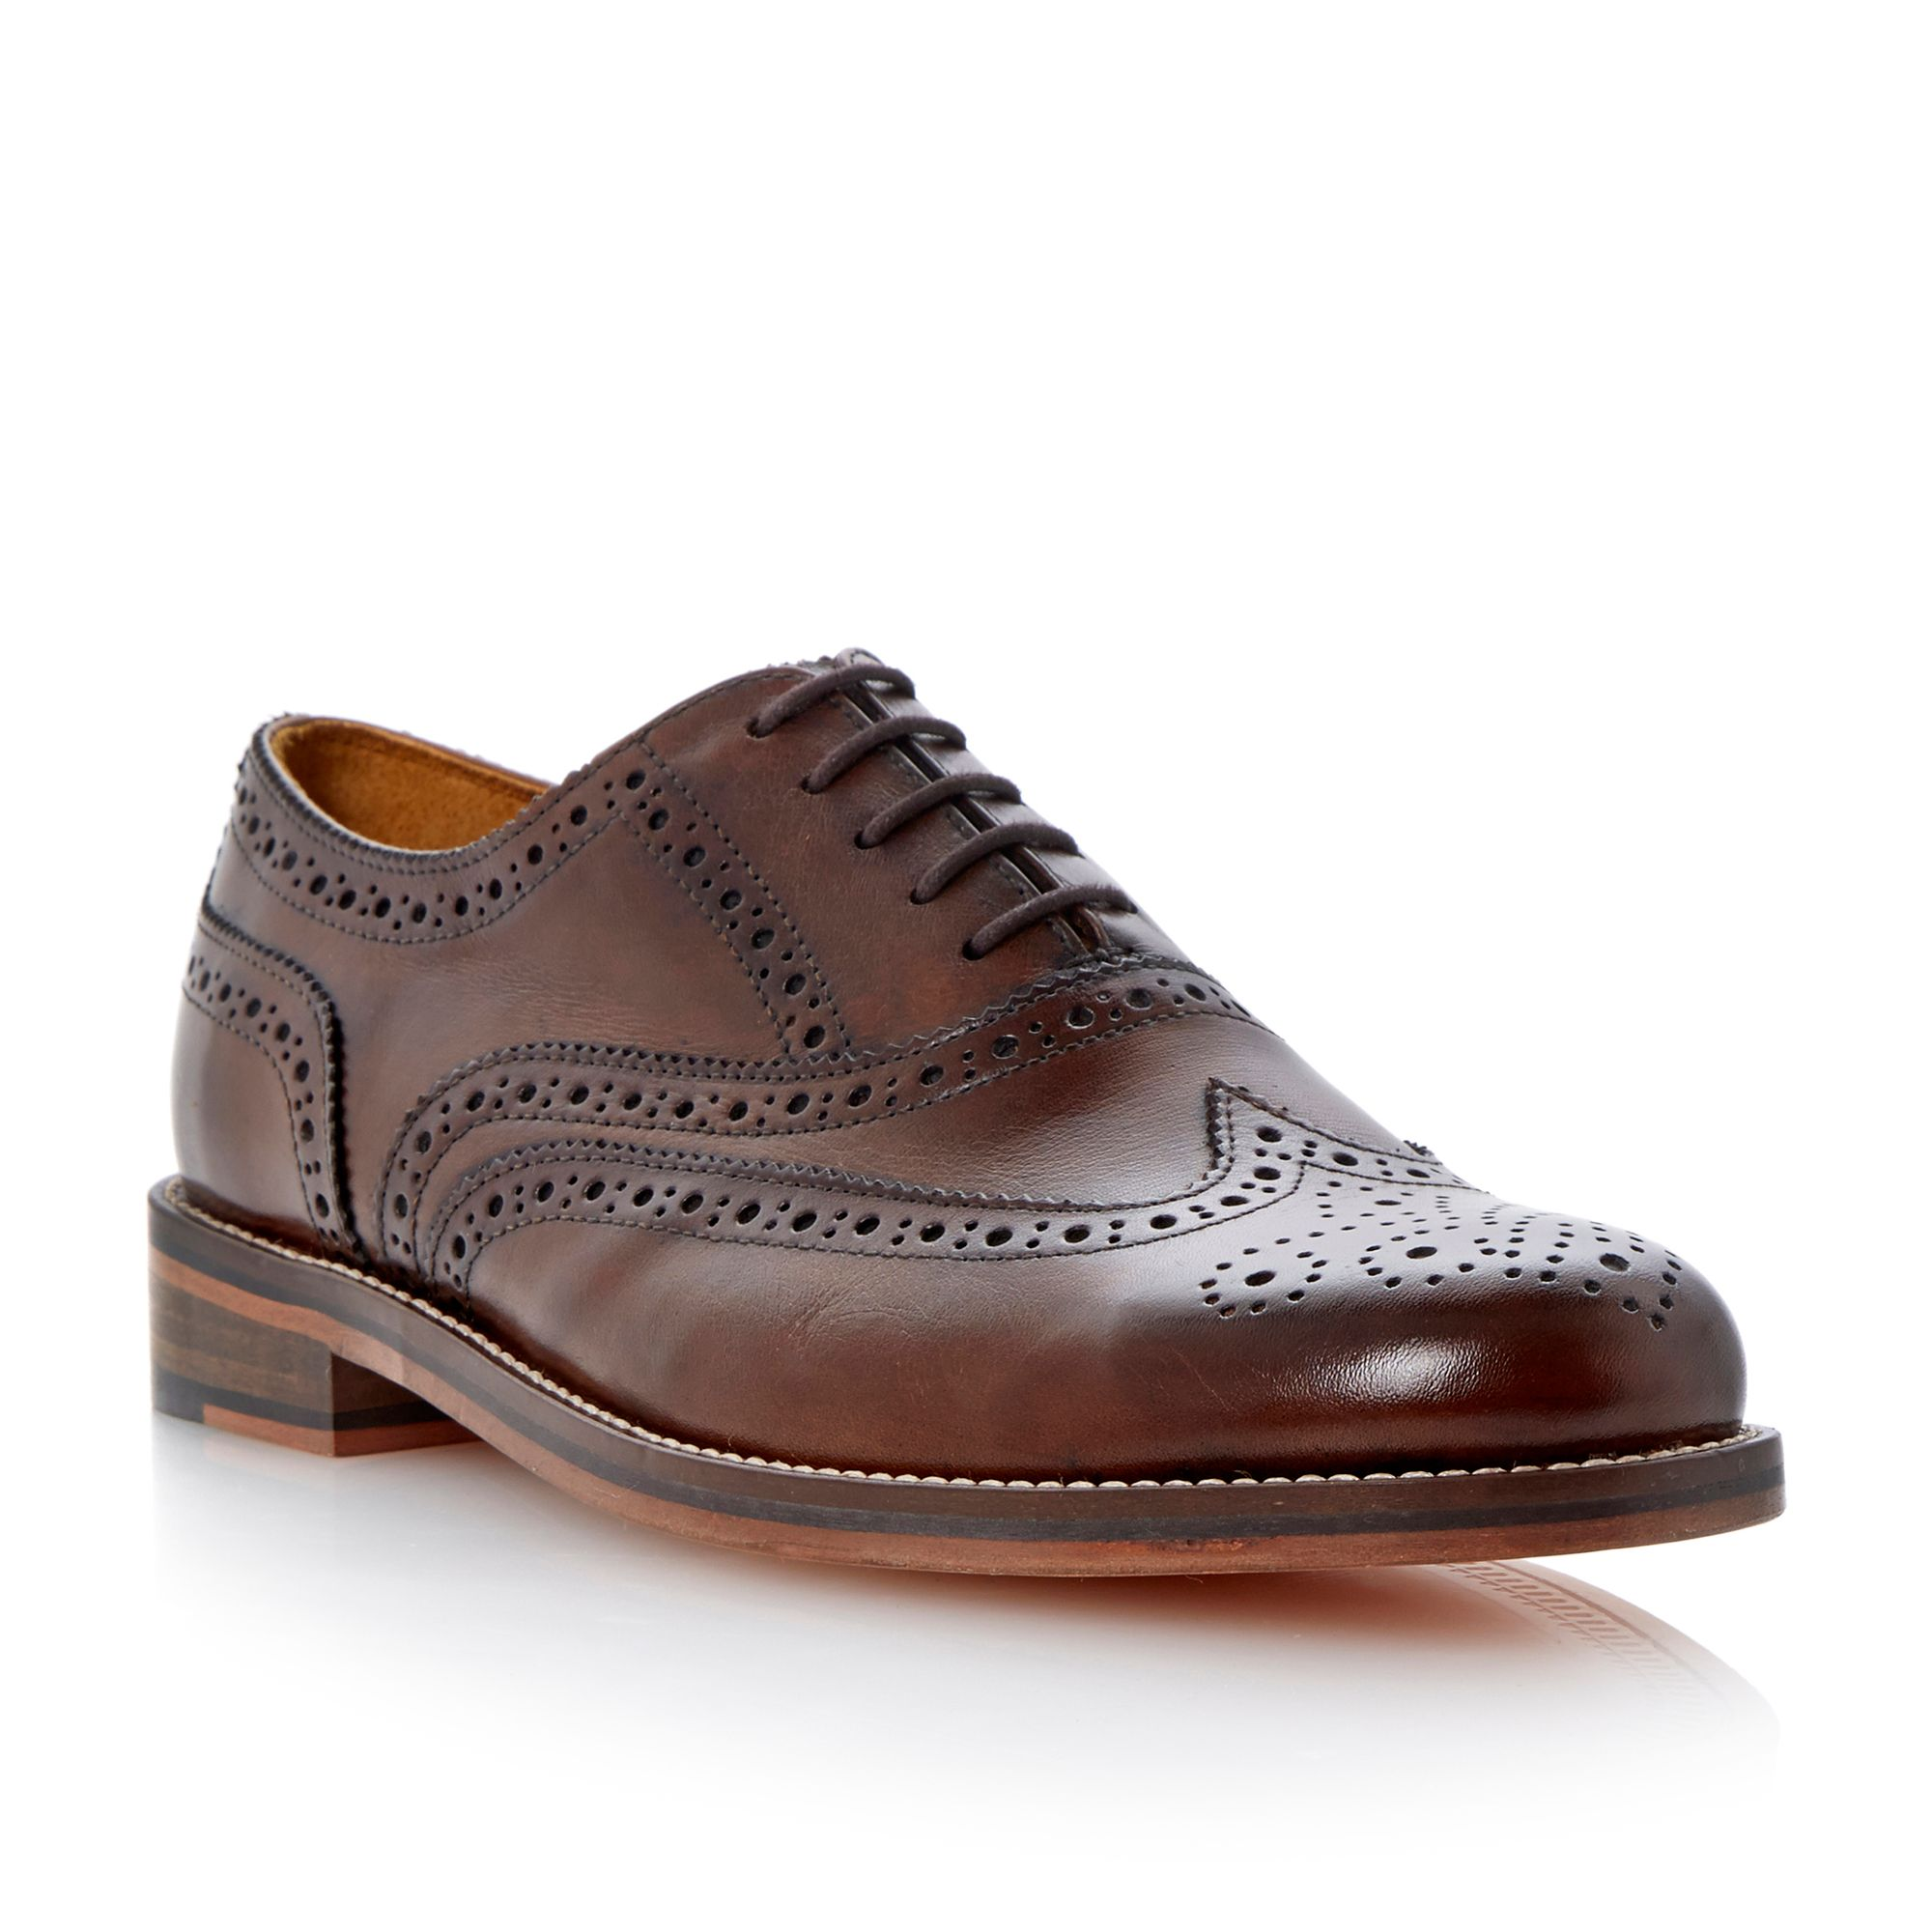 Braxton 1 lace up oxford heavy brogues